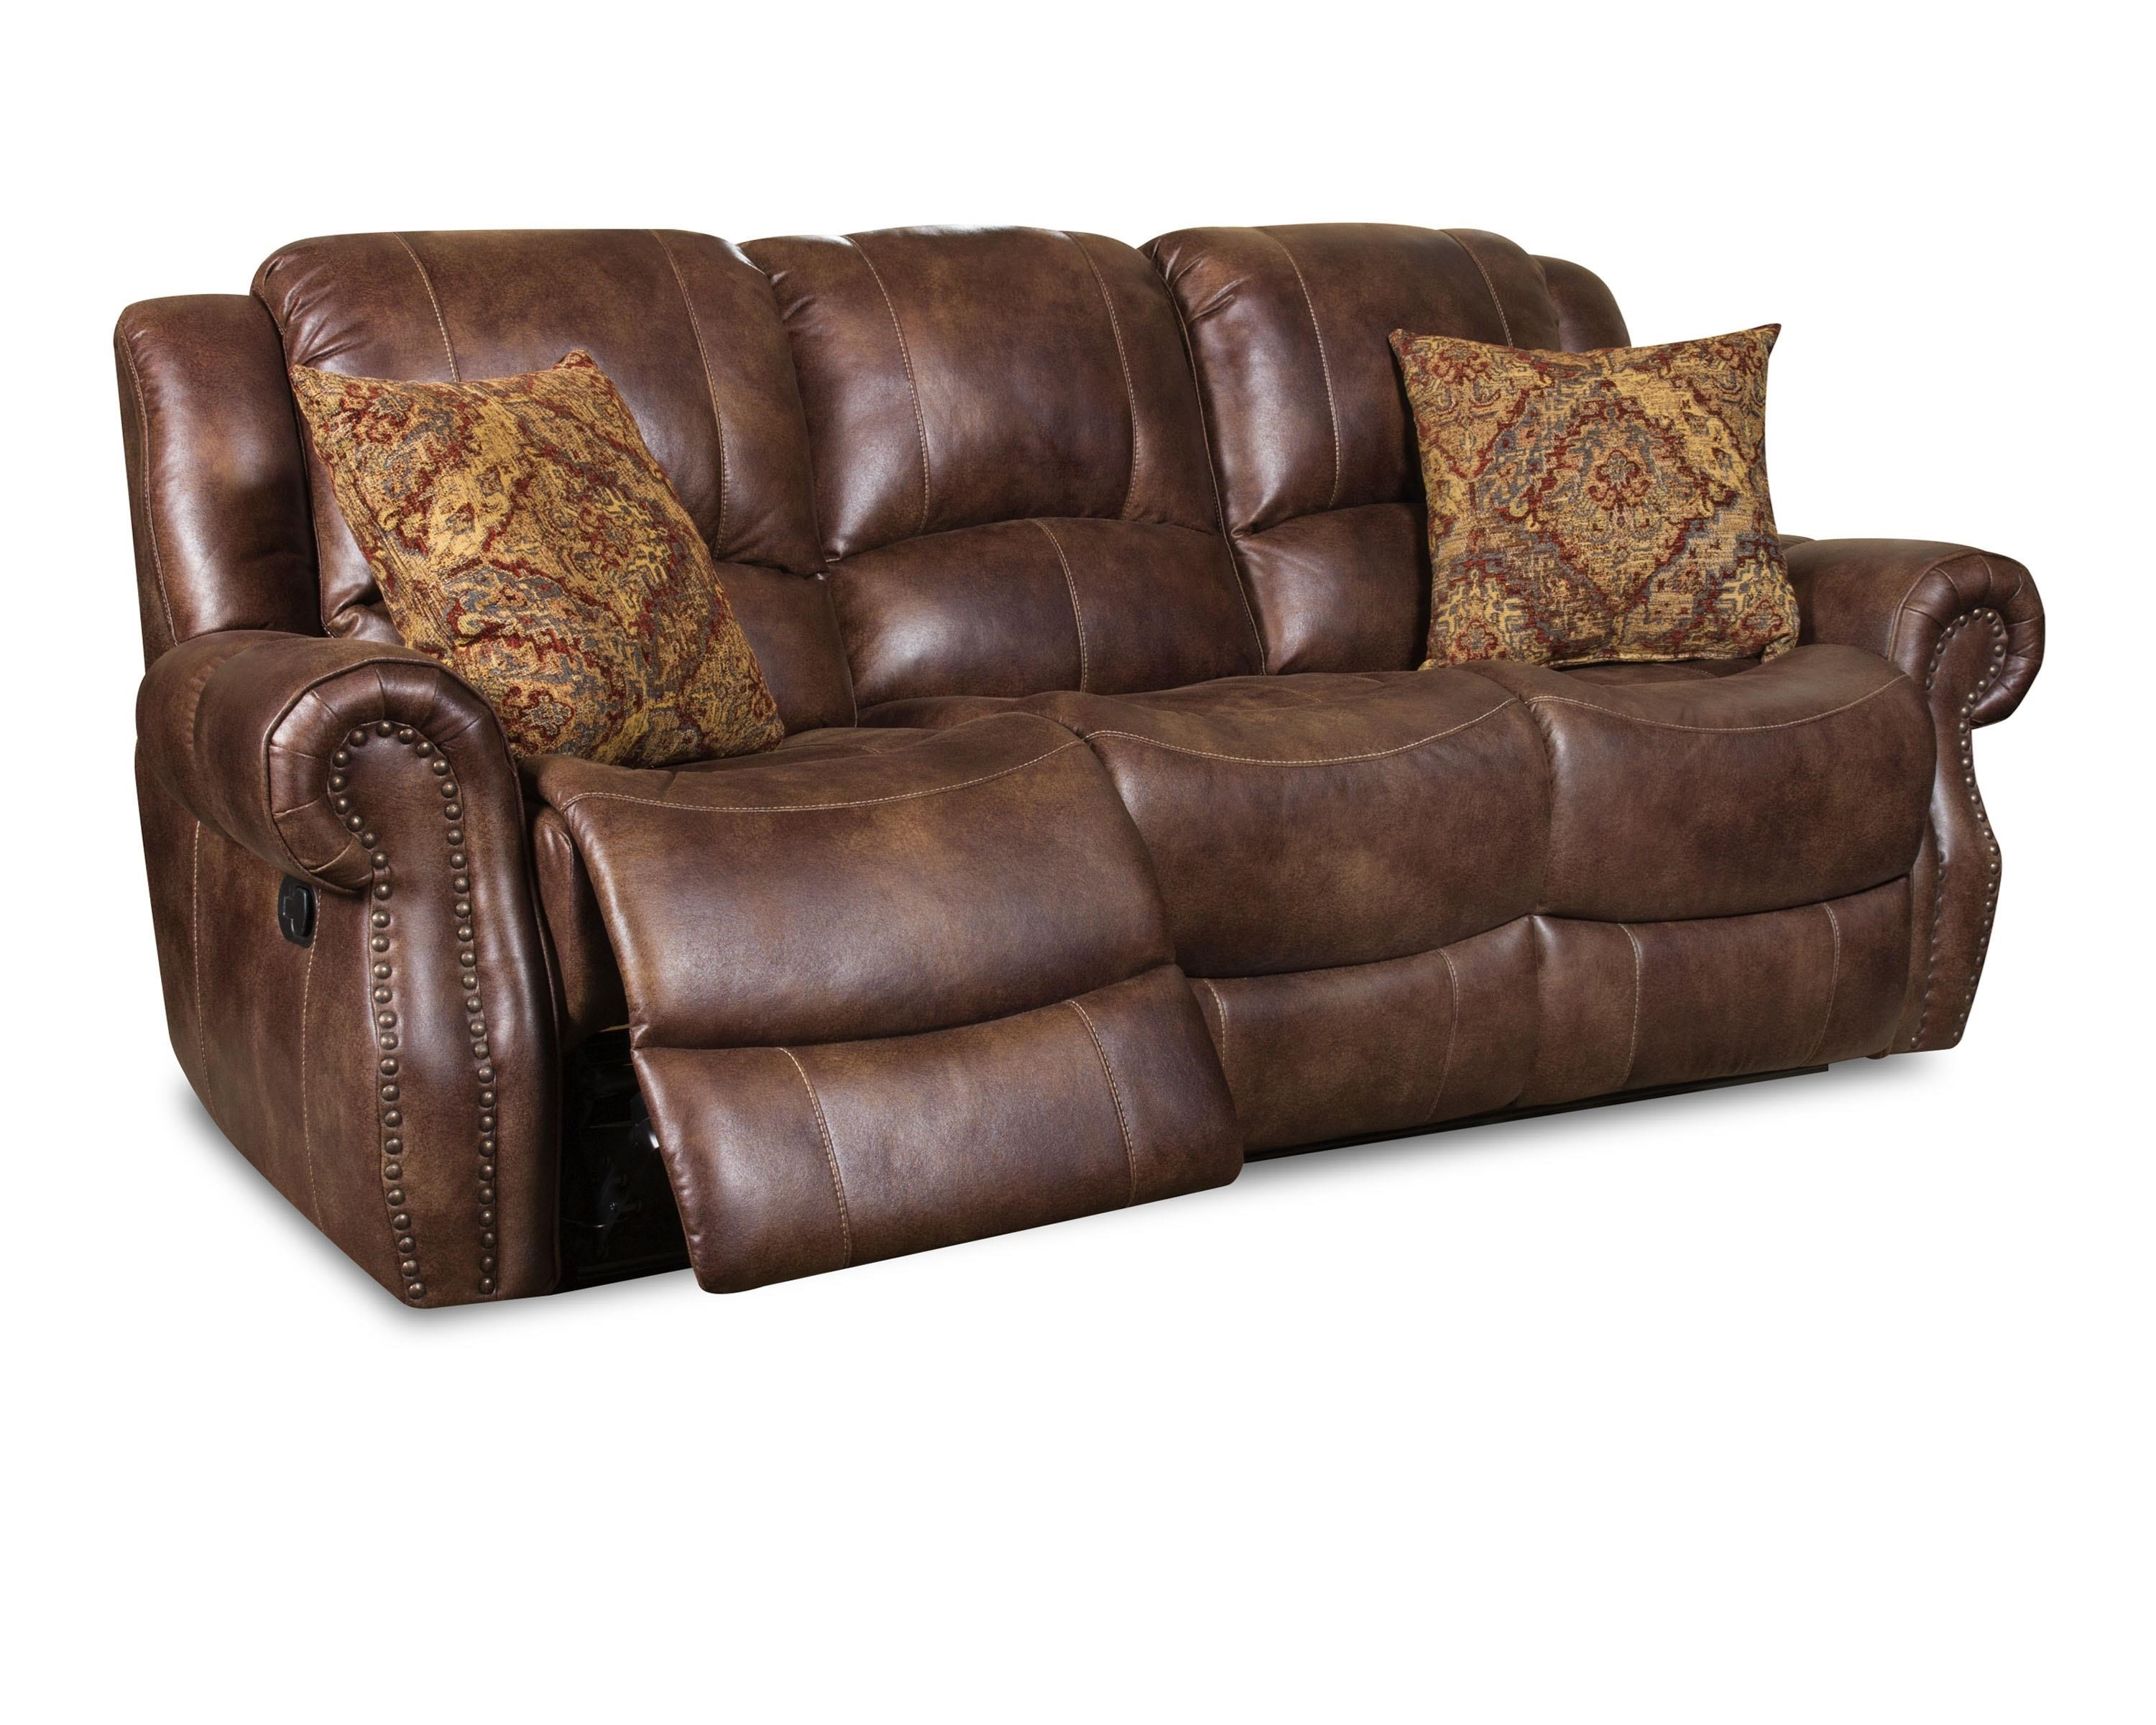 Corinthian Sofa Reviews Corinthian Furniture Sofa Reviews